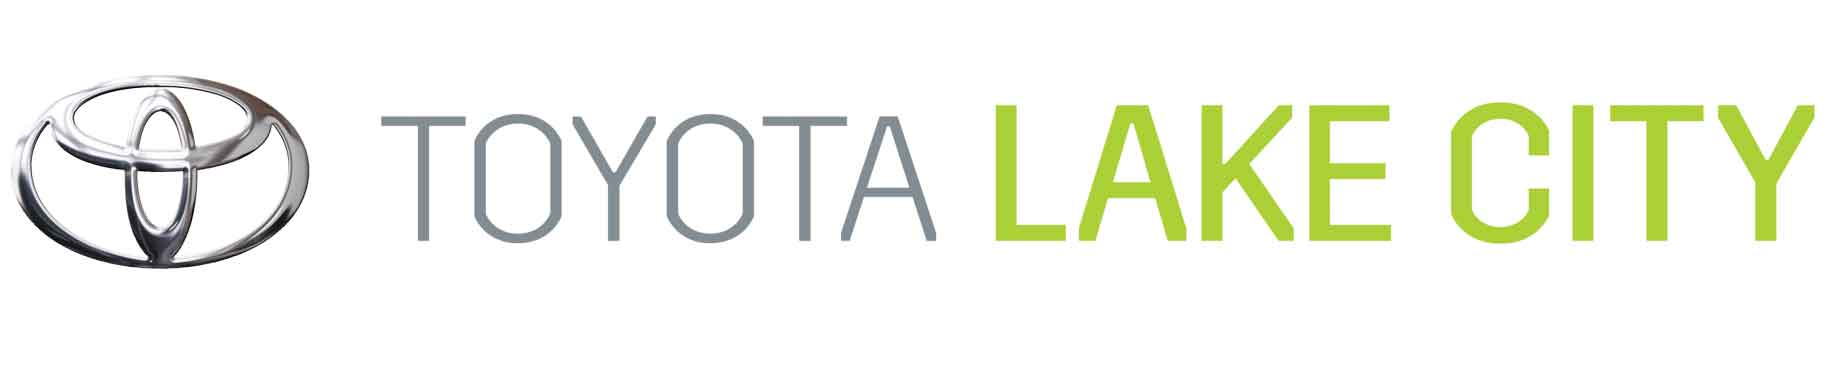 toyota of lake city logo